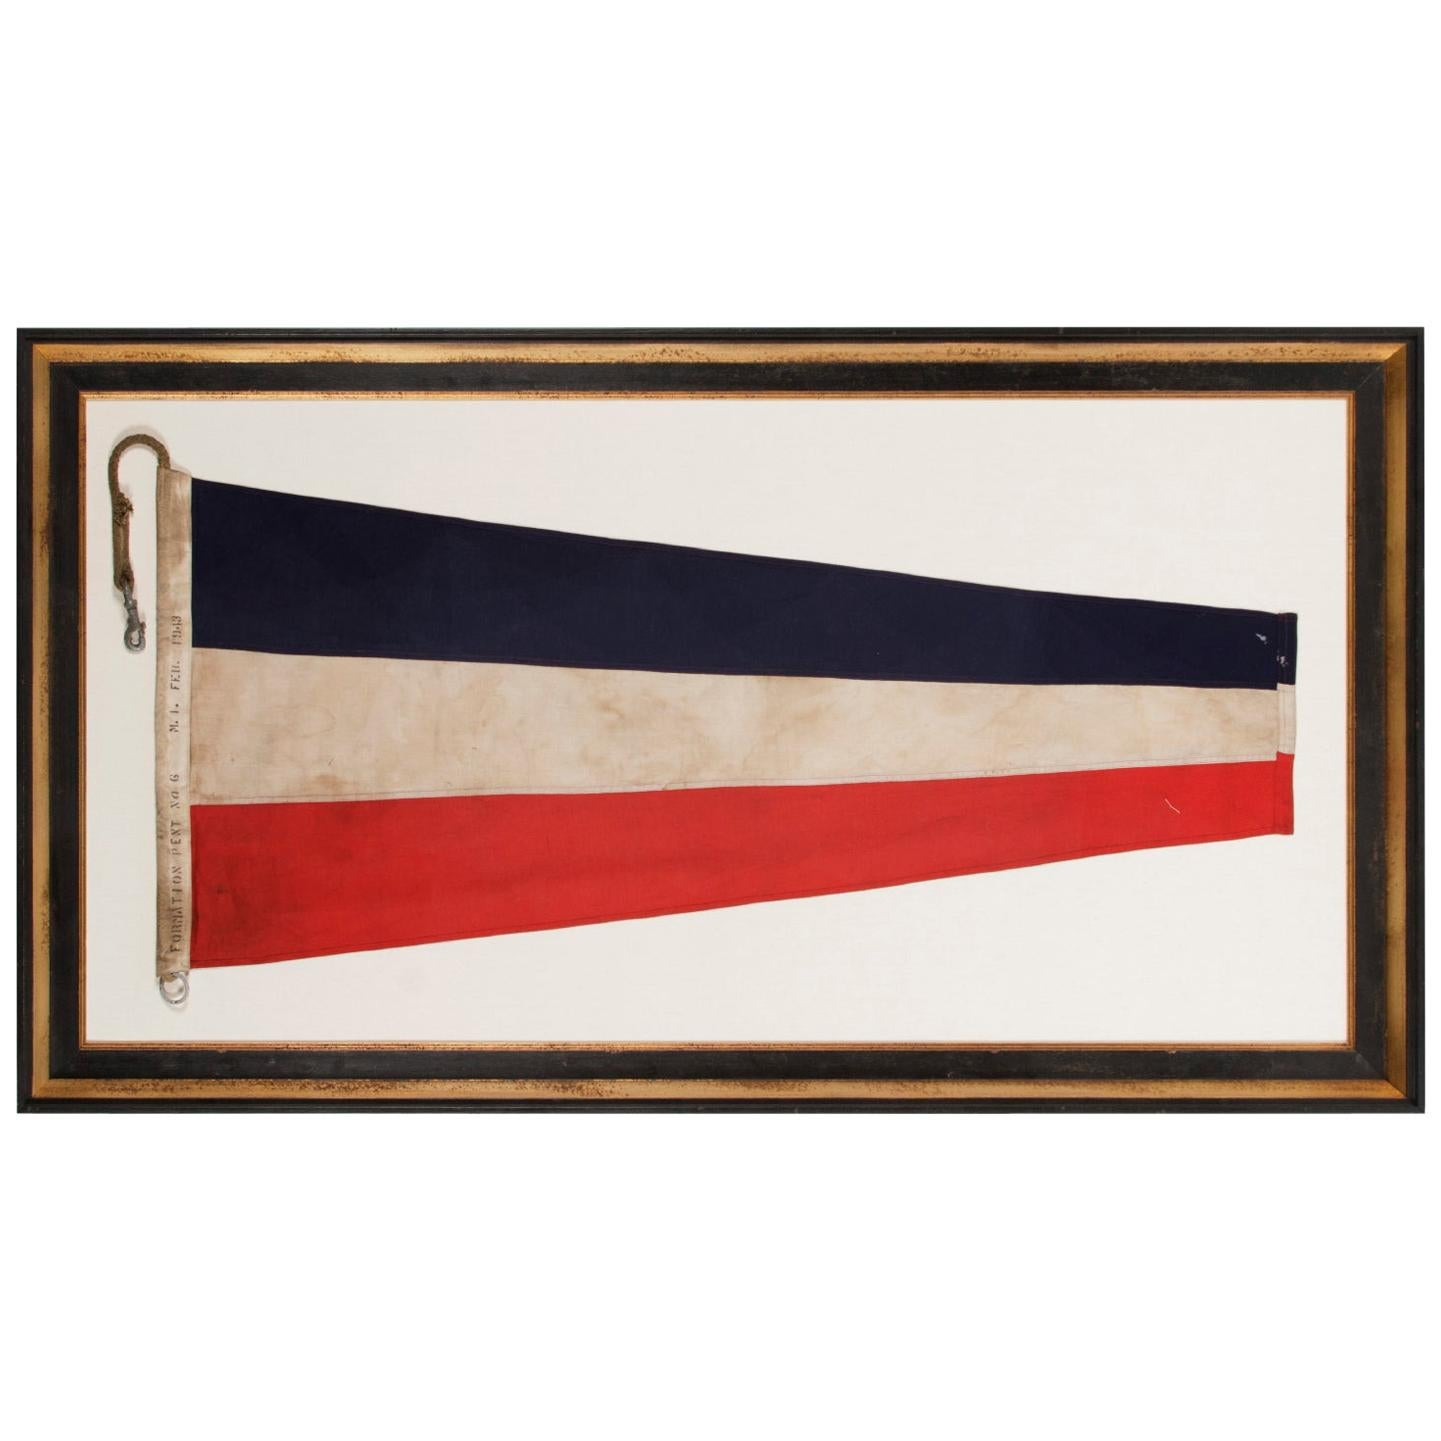 U.S Navy Formation Pennant, Made at Mare Island, California